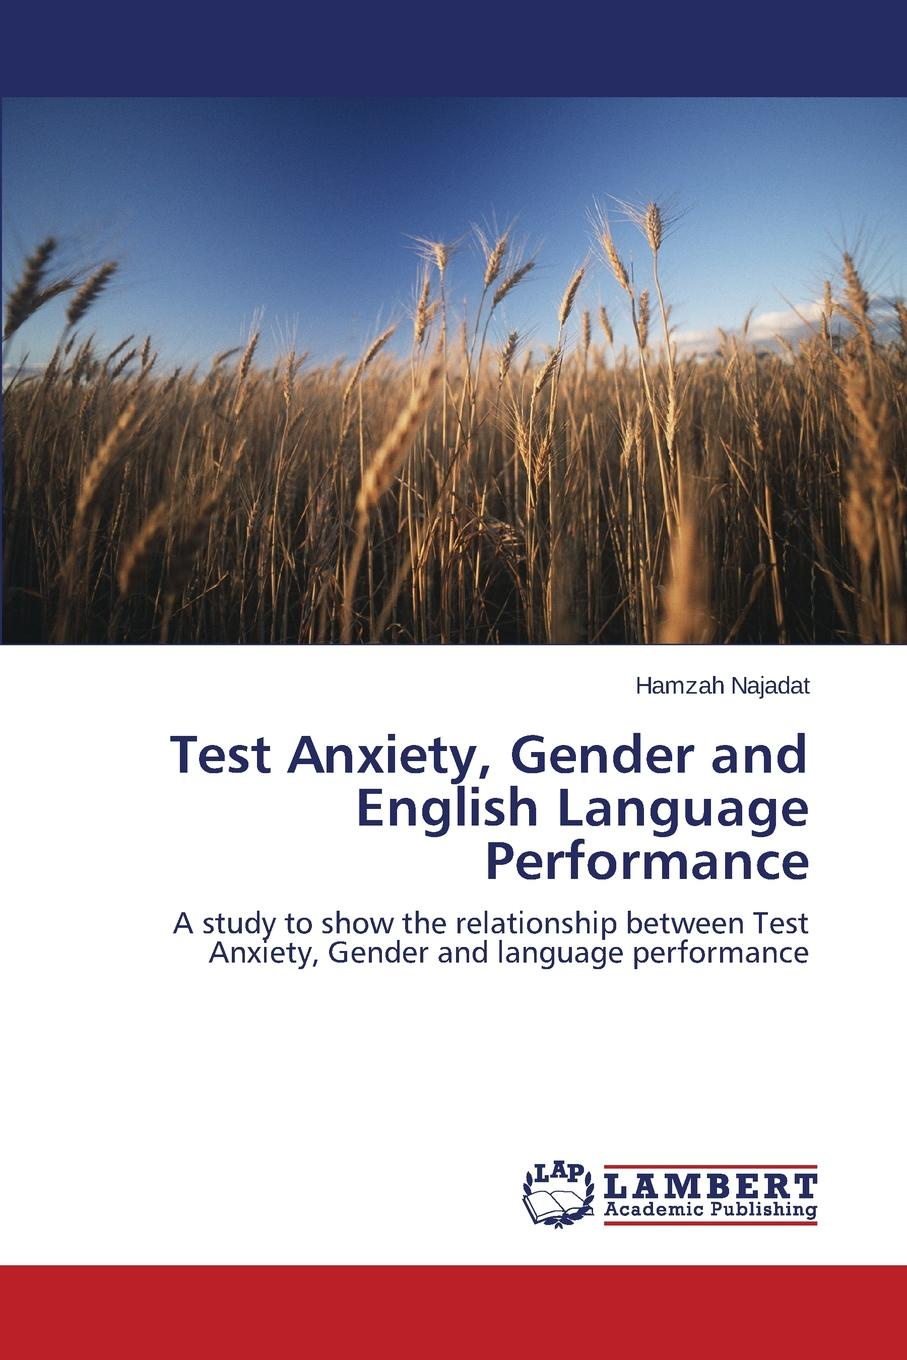 Najadat Hamzah Test Anxiety, Gender and English Language Performance the japanese language proficiency test n2 mock test 2 тренировочные тесты jlpt n2 часть 2 cd книга на японском языке